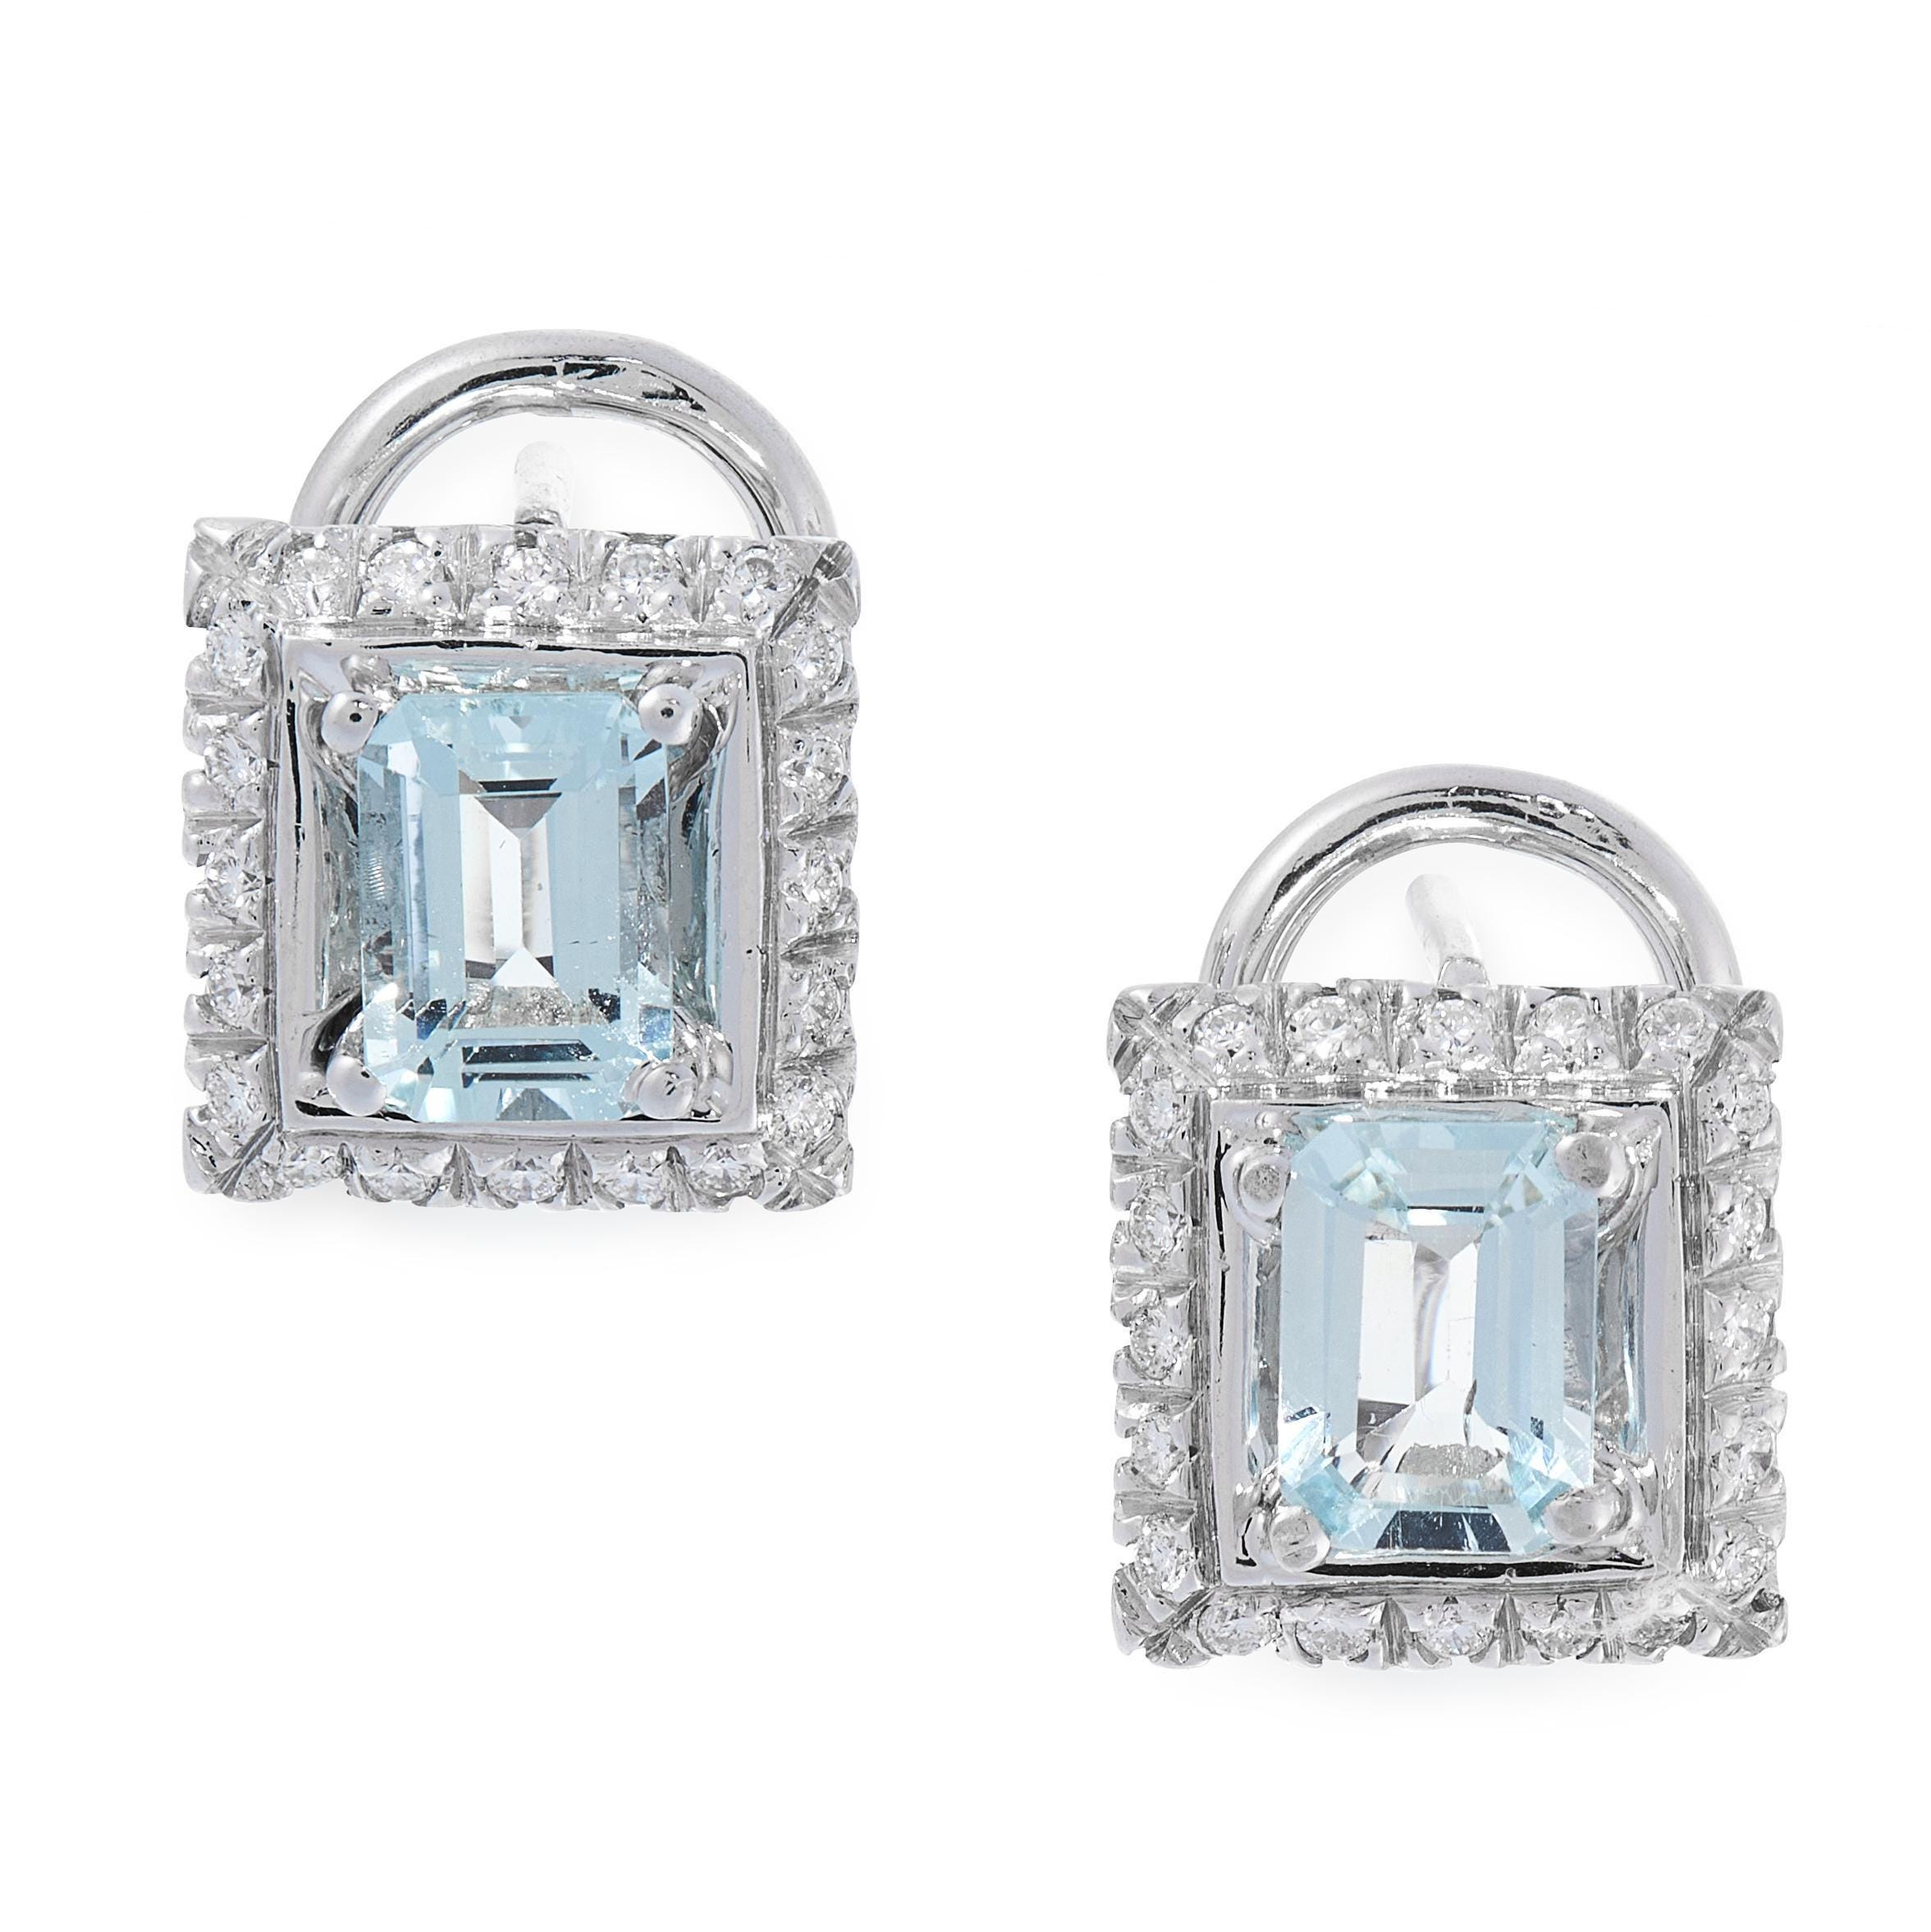 PAIR OF AQUAMARINE AND DIAMOND STUD EARRINGS in 18ct white gold, each set with an emerald cut